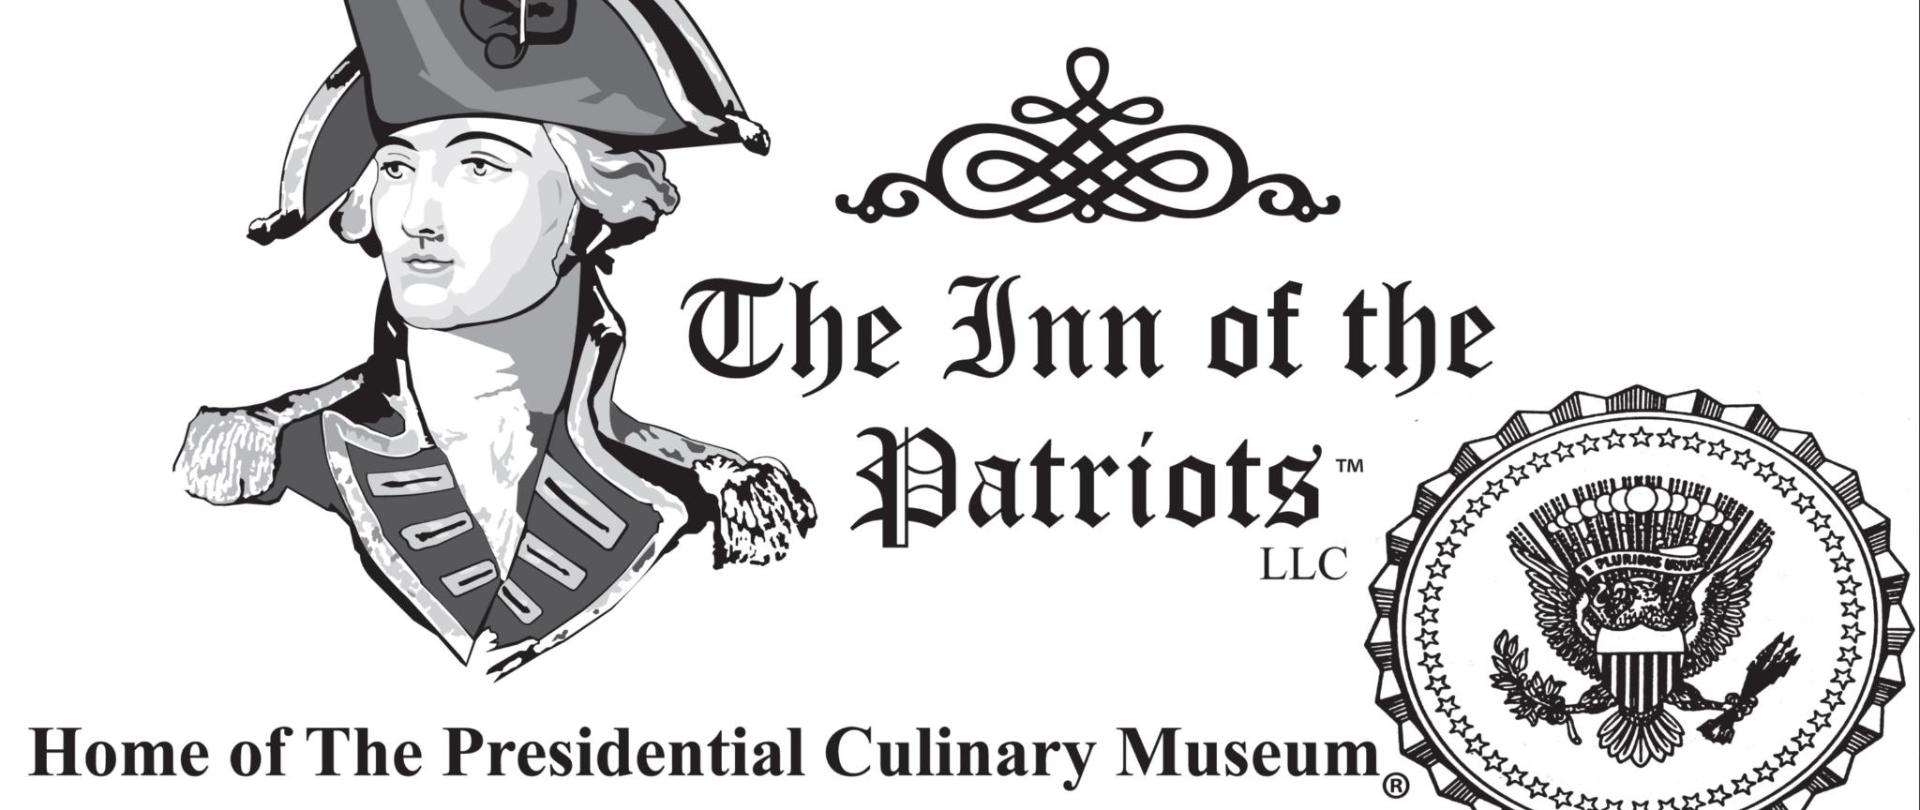 The Inn of the Patriots logo high res 2018.jpg